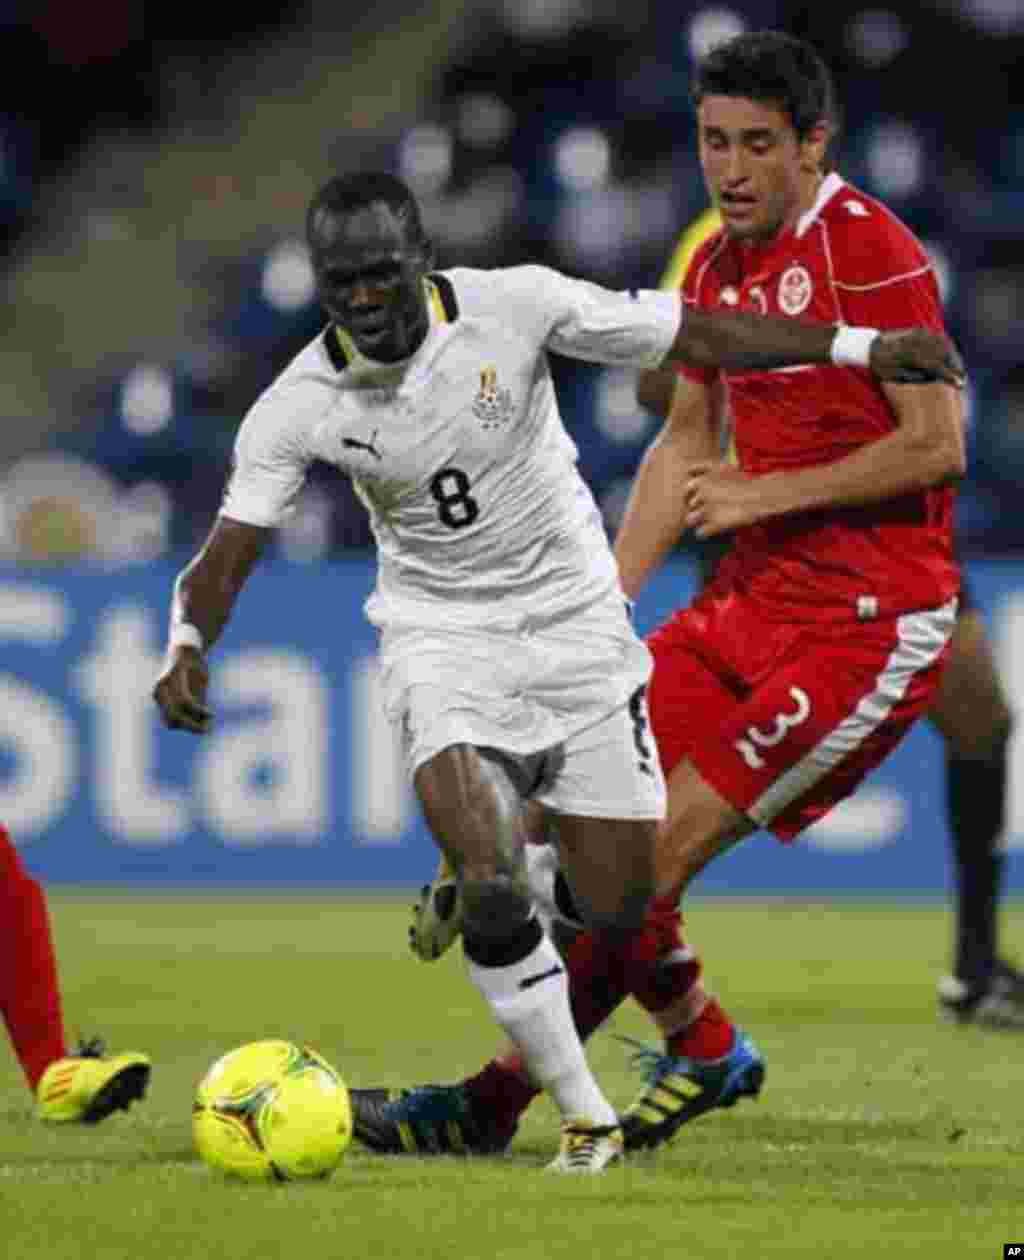 Ghana's Emmaneul Badu Agyemang (L) fights for the ball with Tunisia's Karim Haggui during their African Nations Cup quarter-final soccer match at Franceville stadium February 5, 2012.